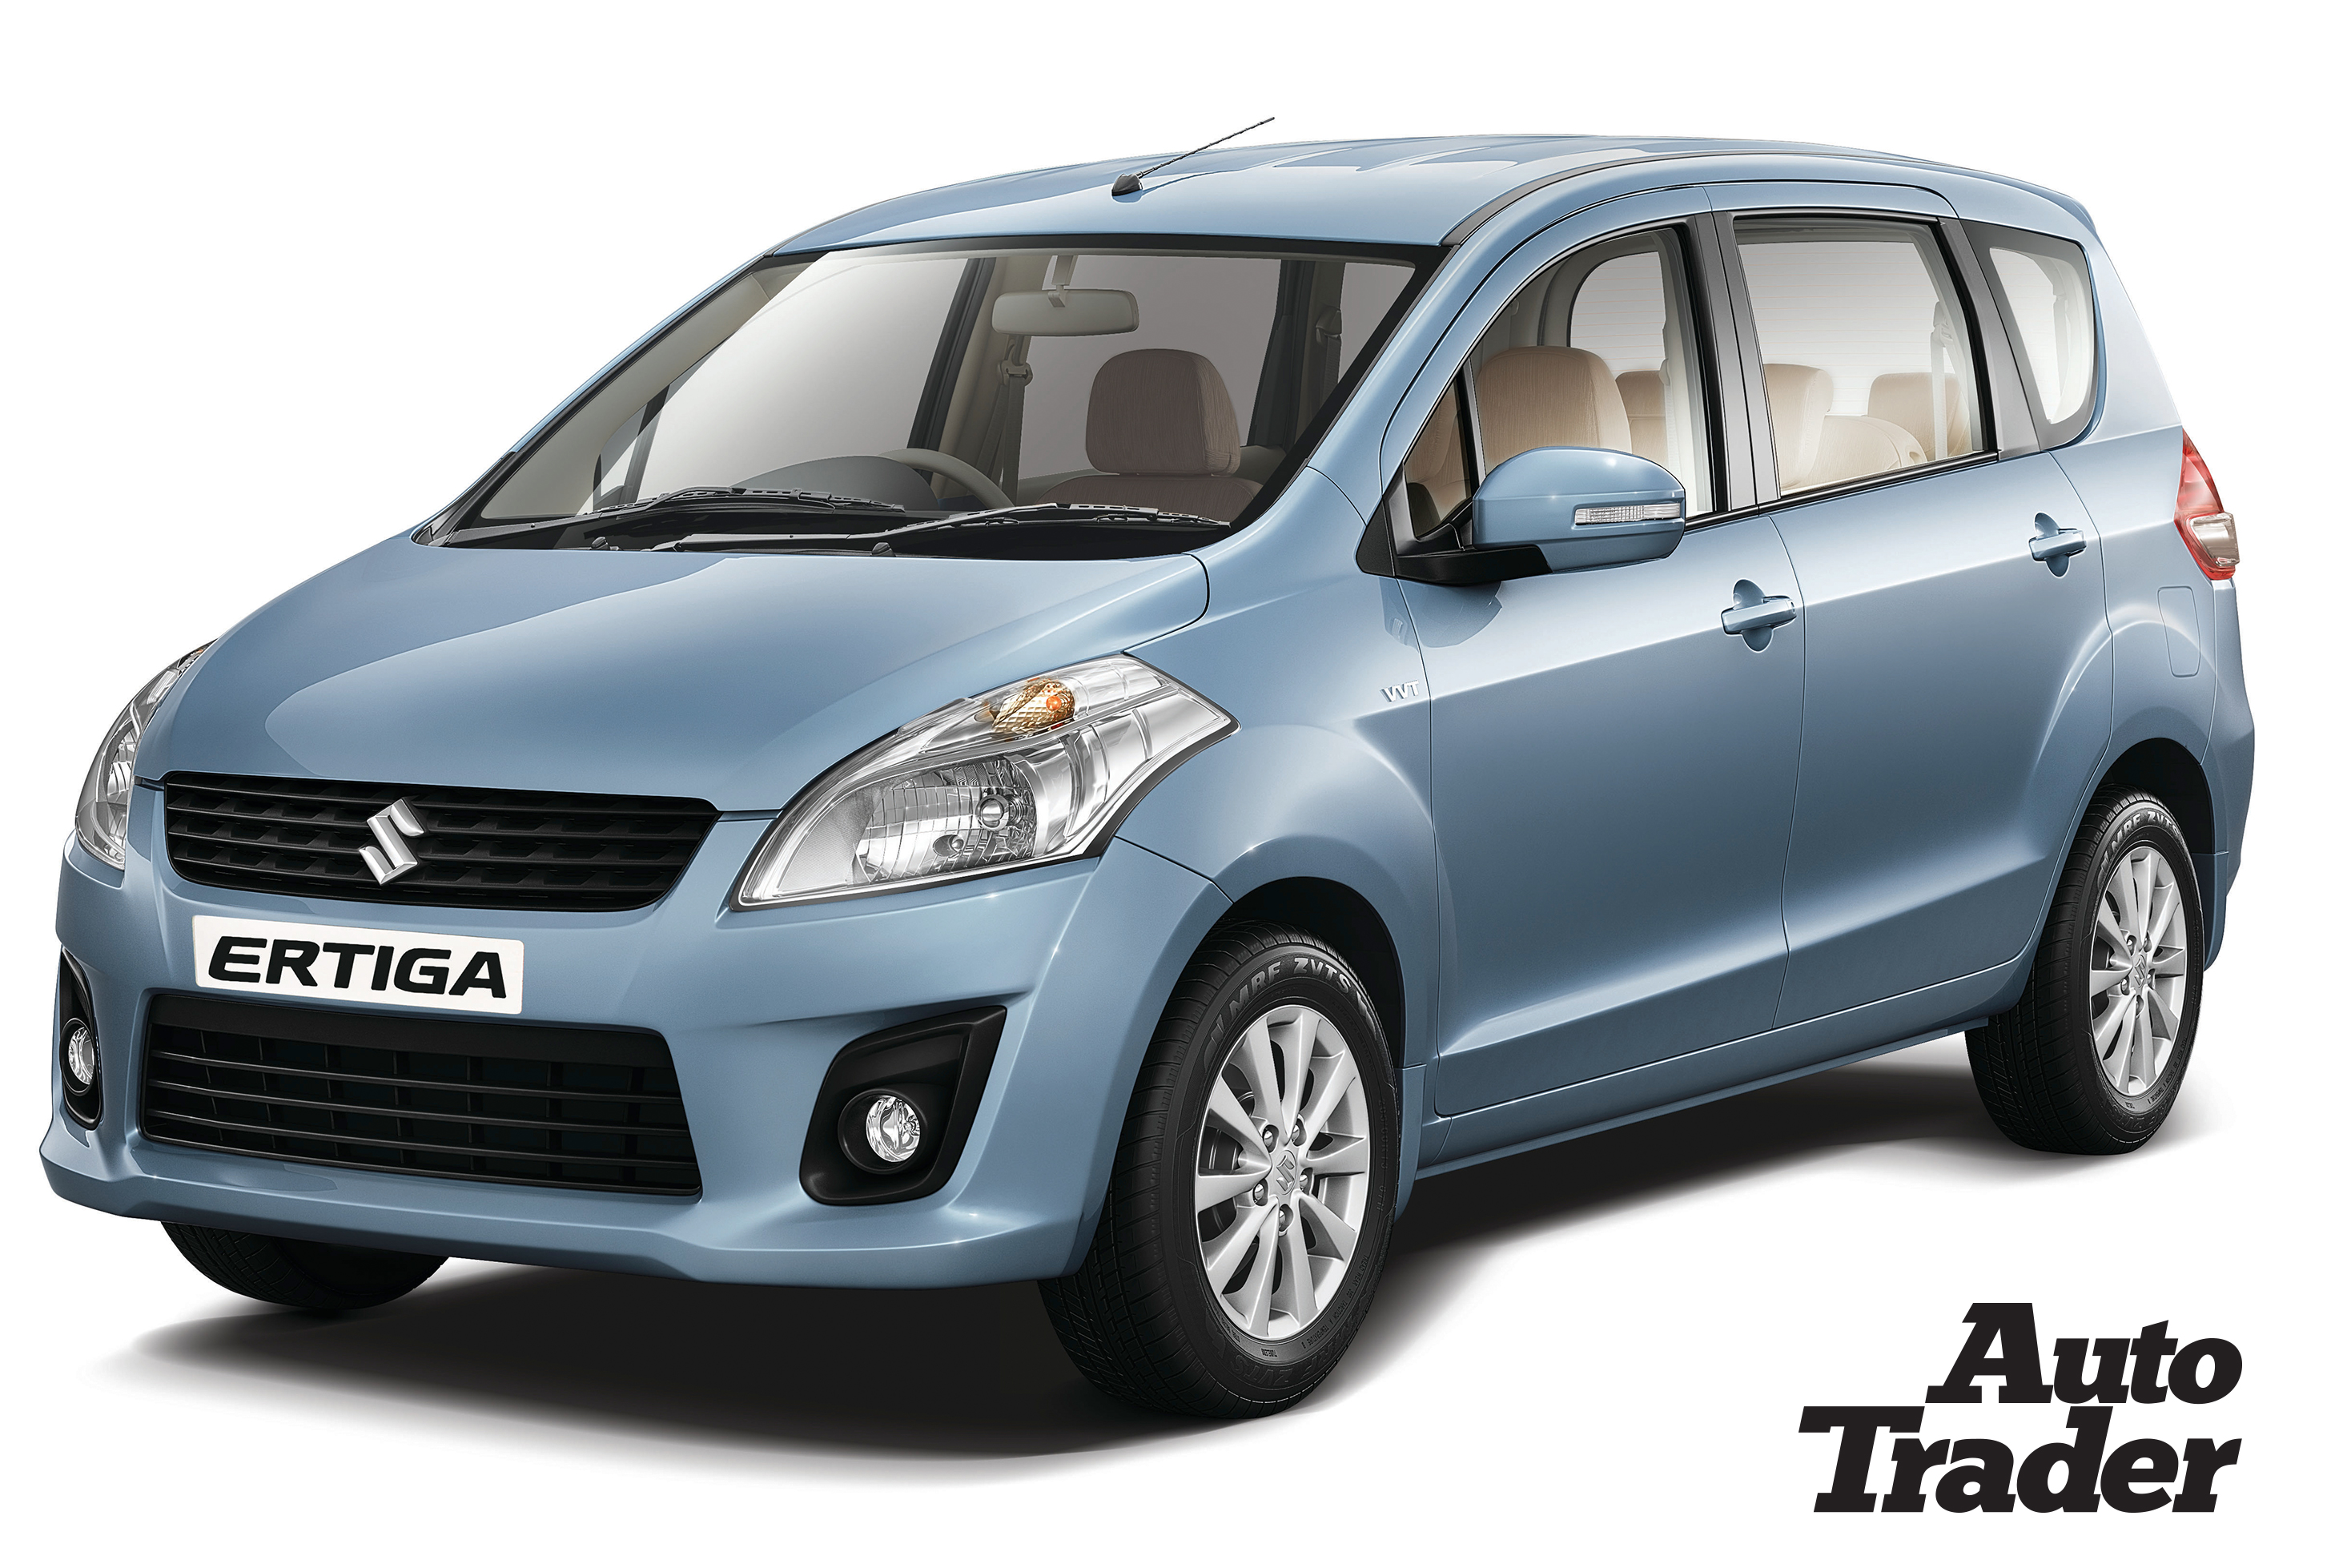 Car for Sale 7 Seater Awesome Auto Trader Uae News